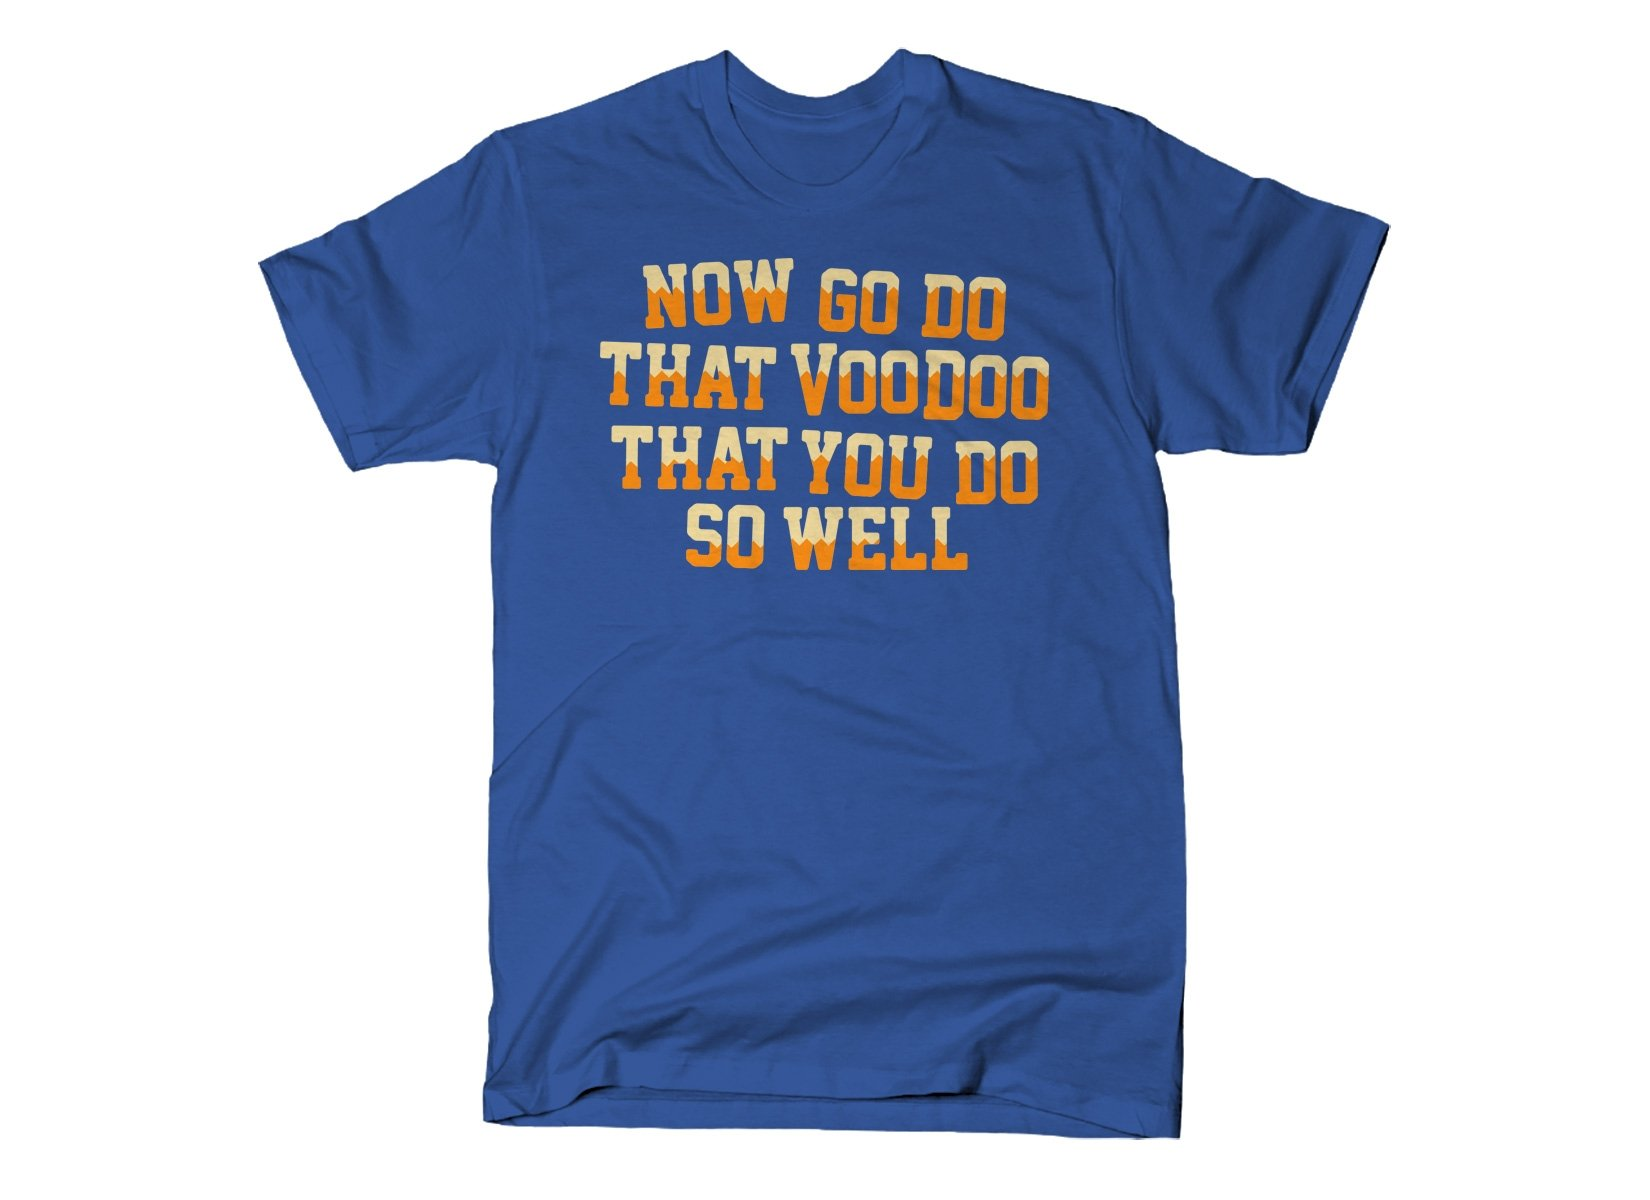 That Voodoo That You Do So Well on Mens T-Shirt